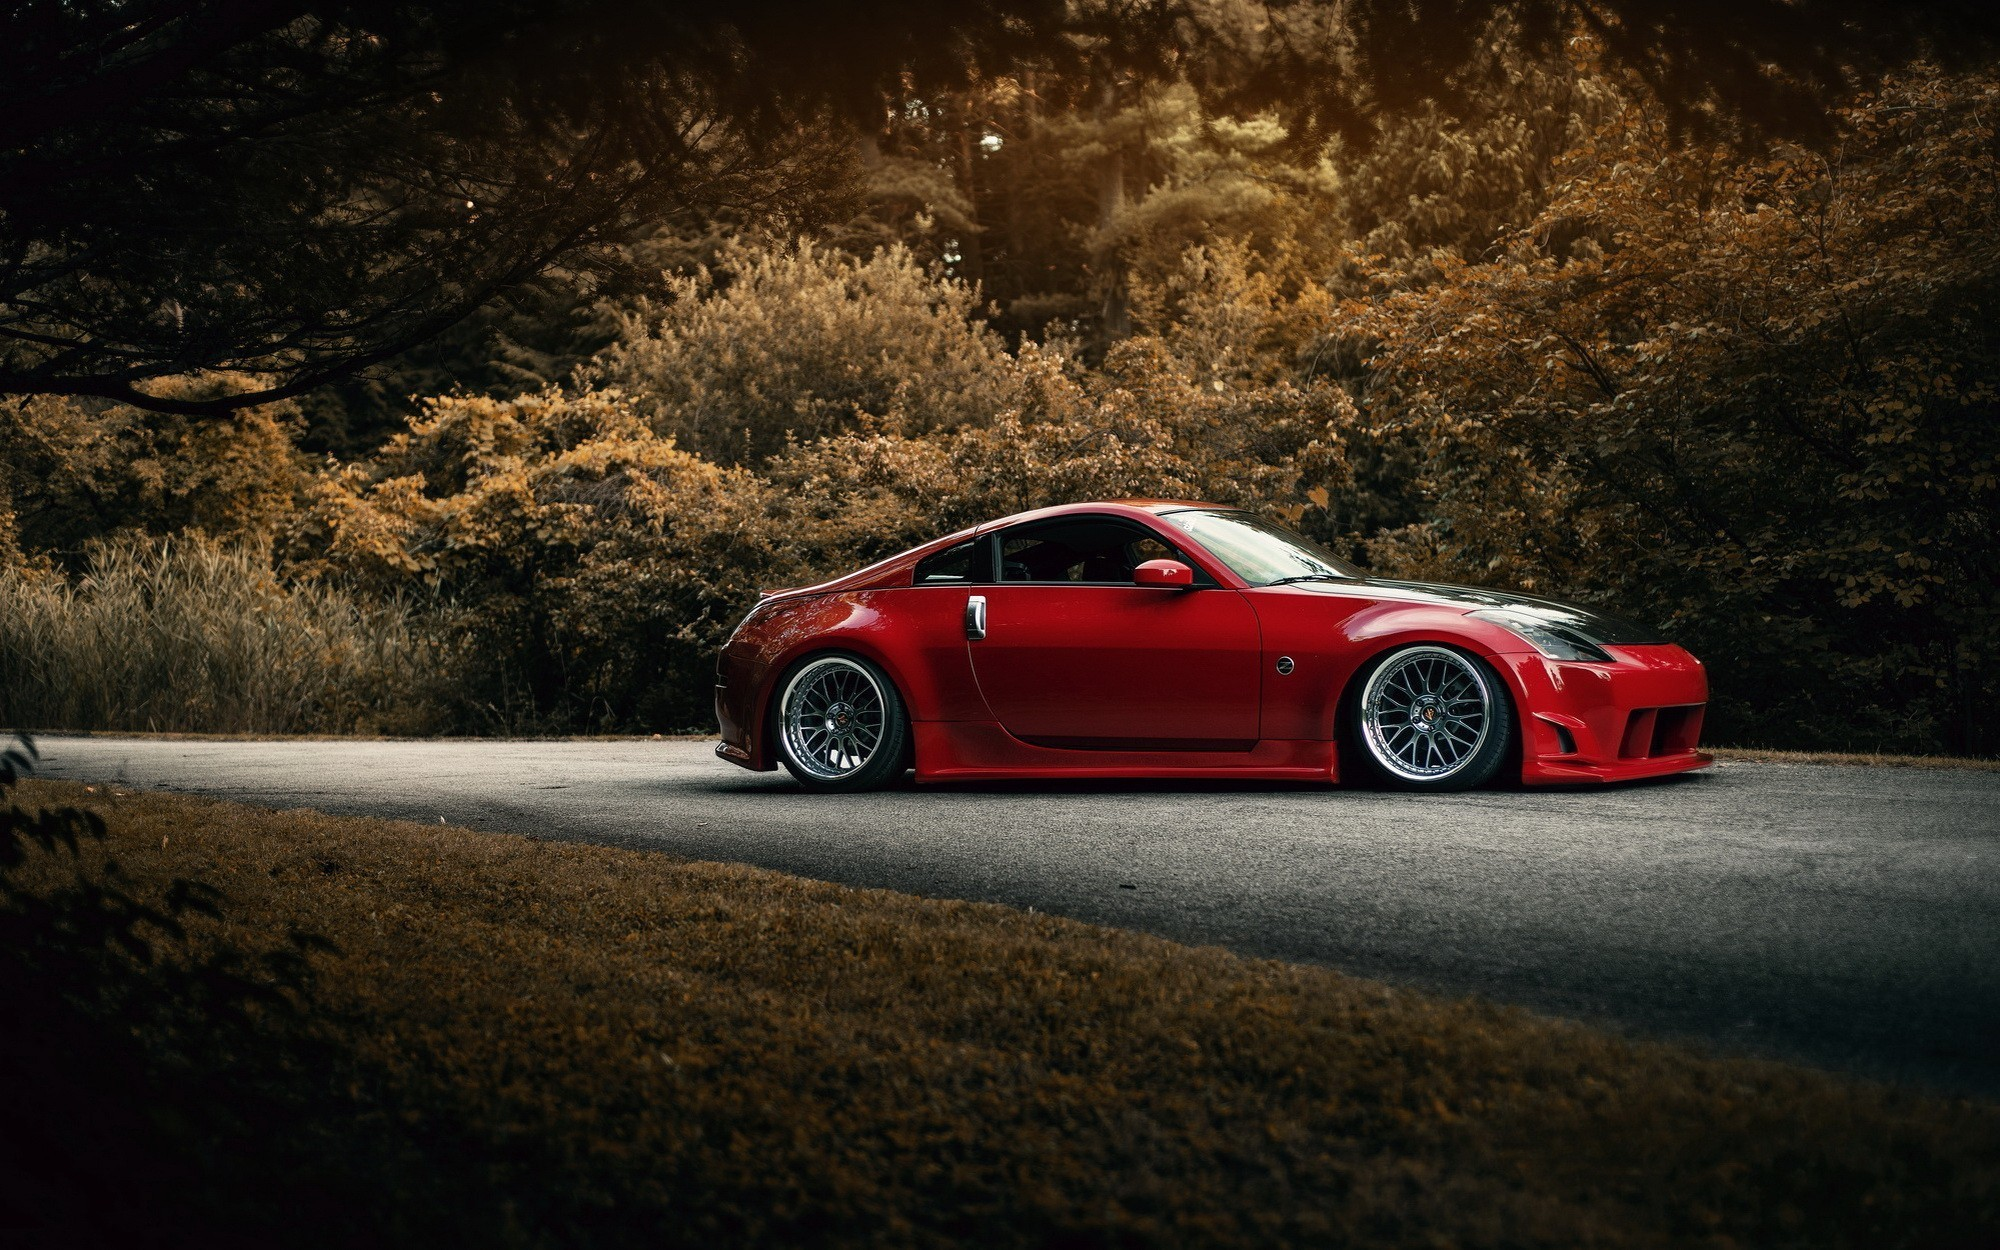 car, JDM, Nissan, Nissan 350Z Wallpapers HD / Desktop and Mobile Backgrounds